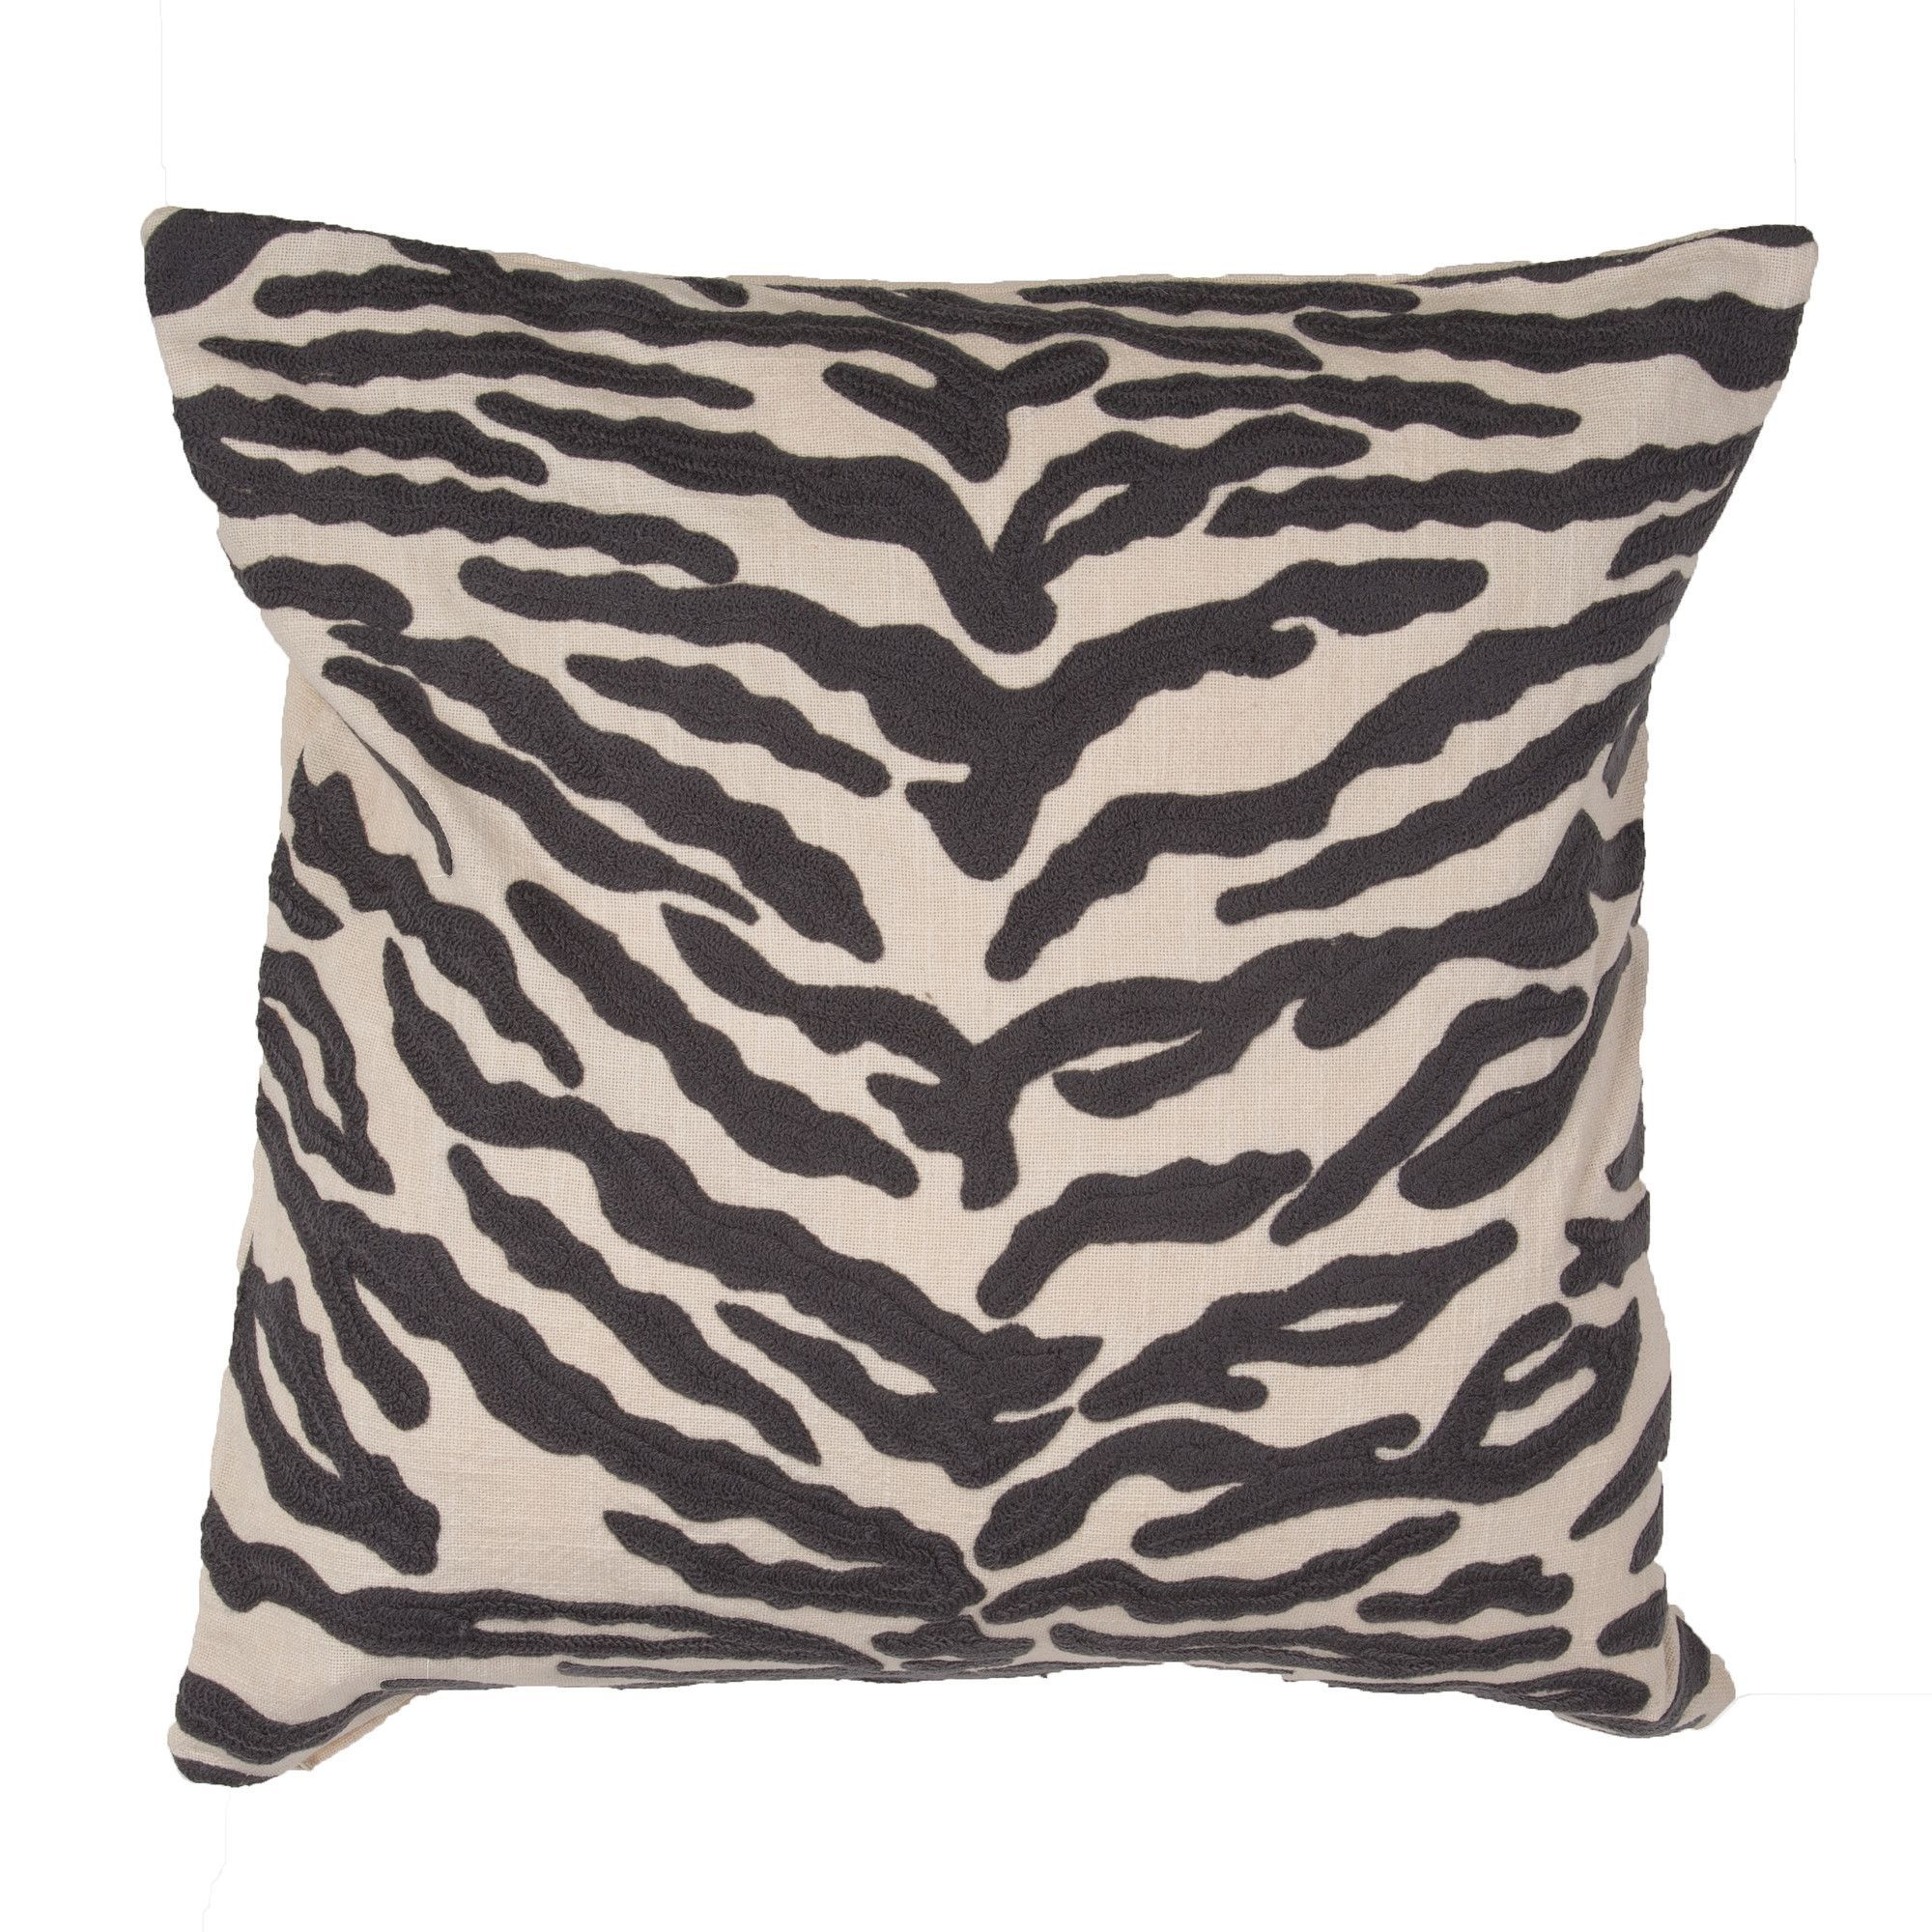 National Geographic Animal Print Cotton Throw Pillow